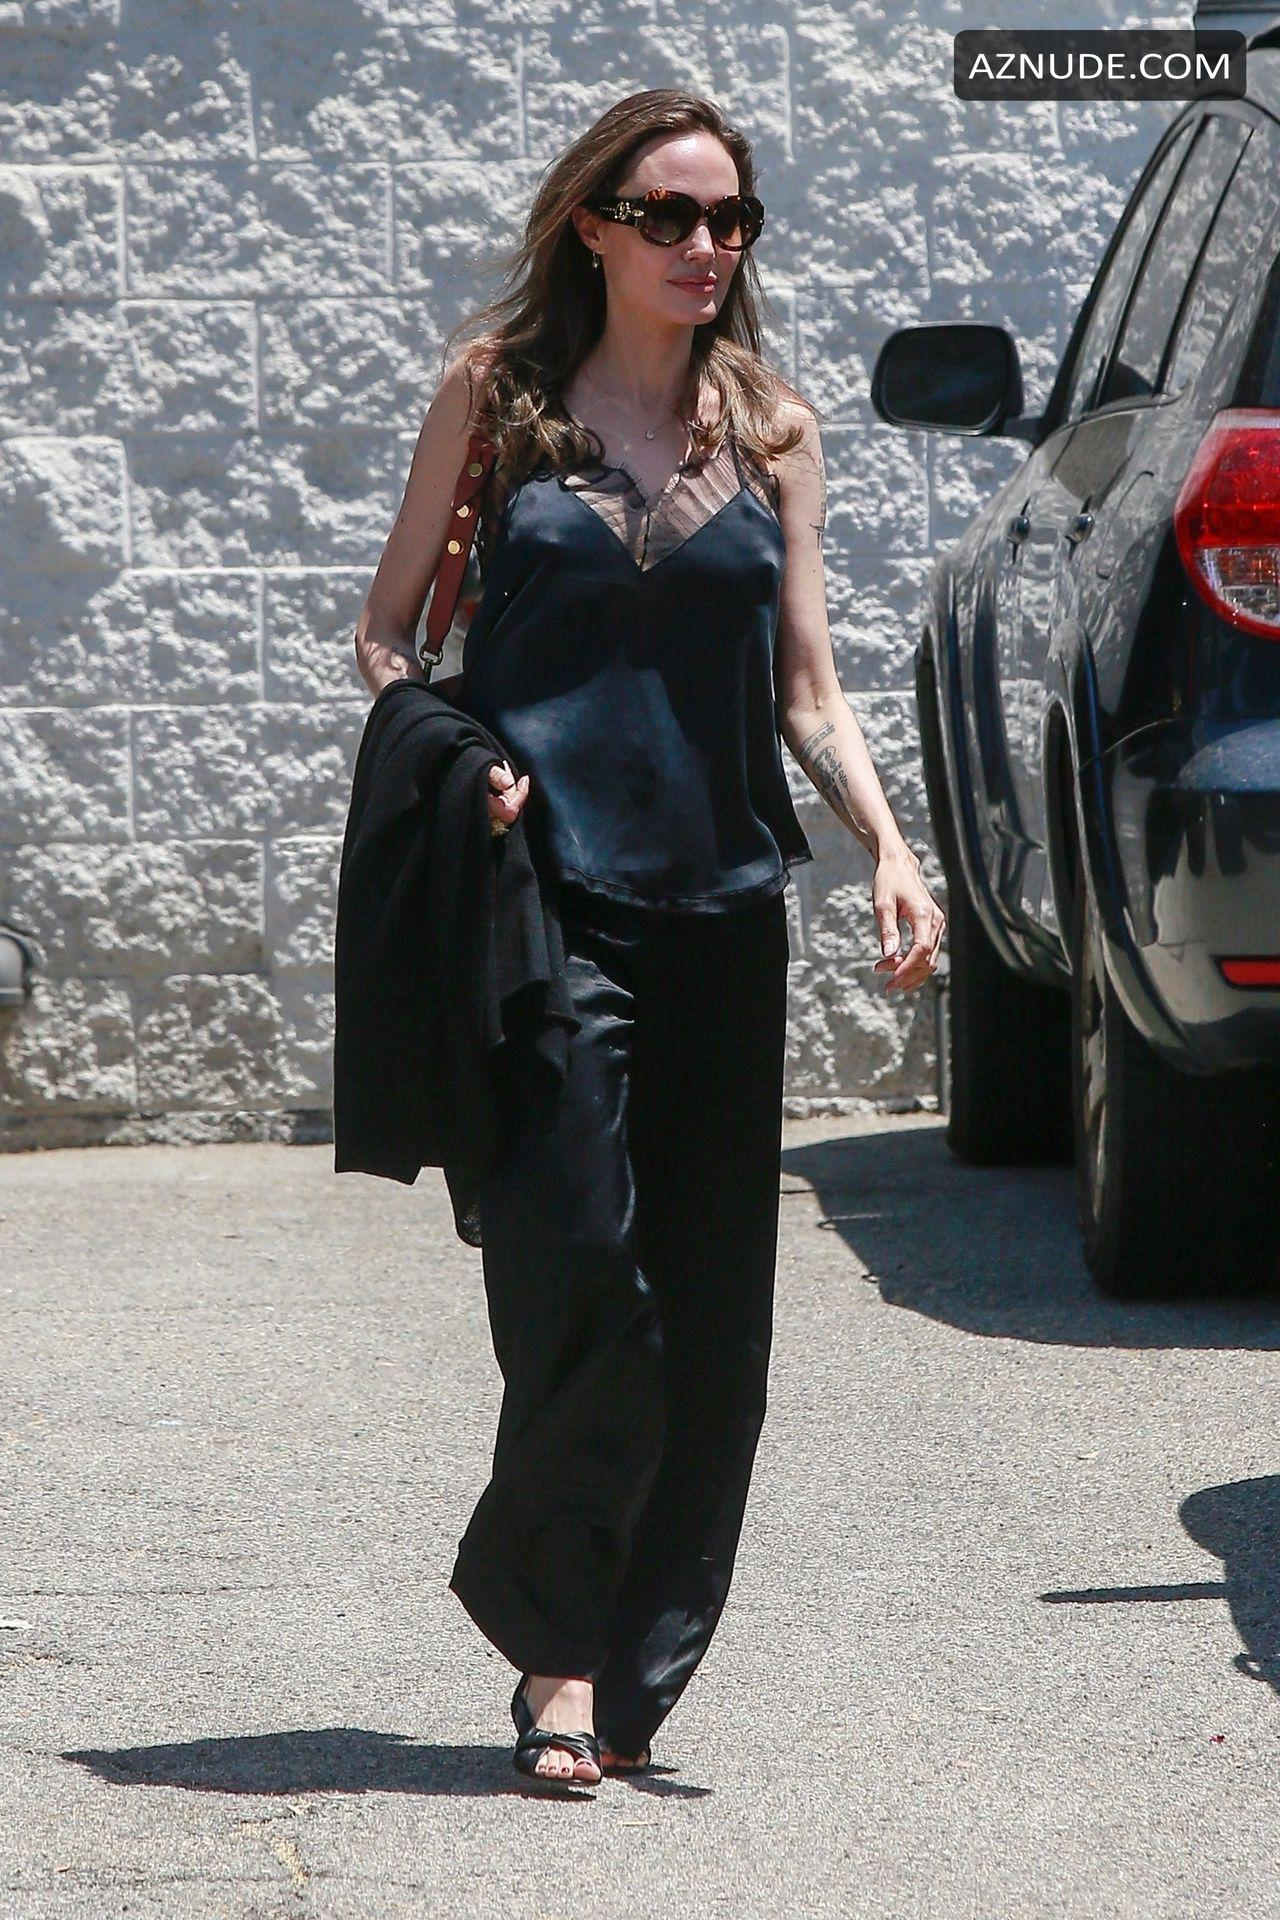 Angelina Jolie Sex angelina jolie sexy emerges from a salon to her ride looking